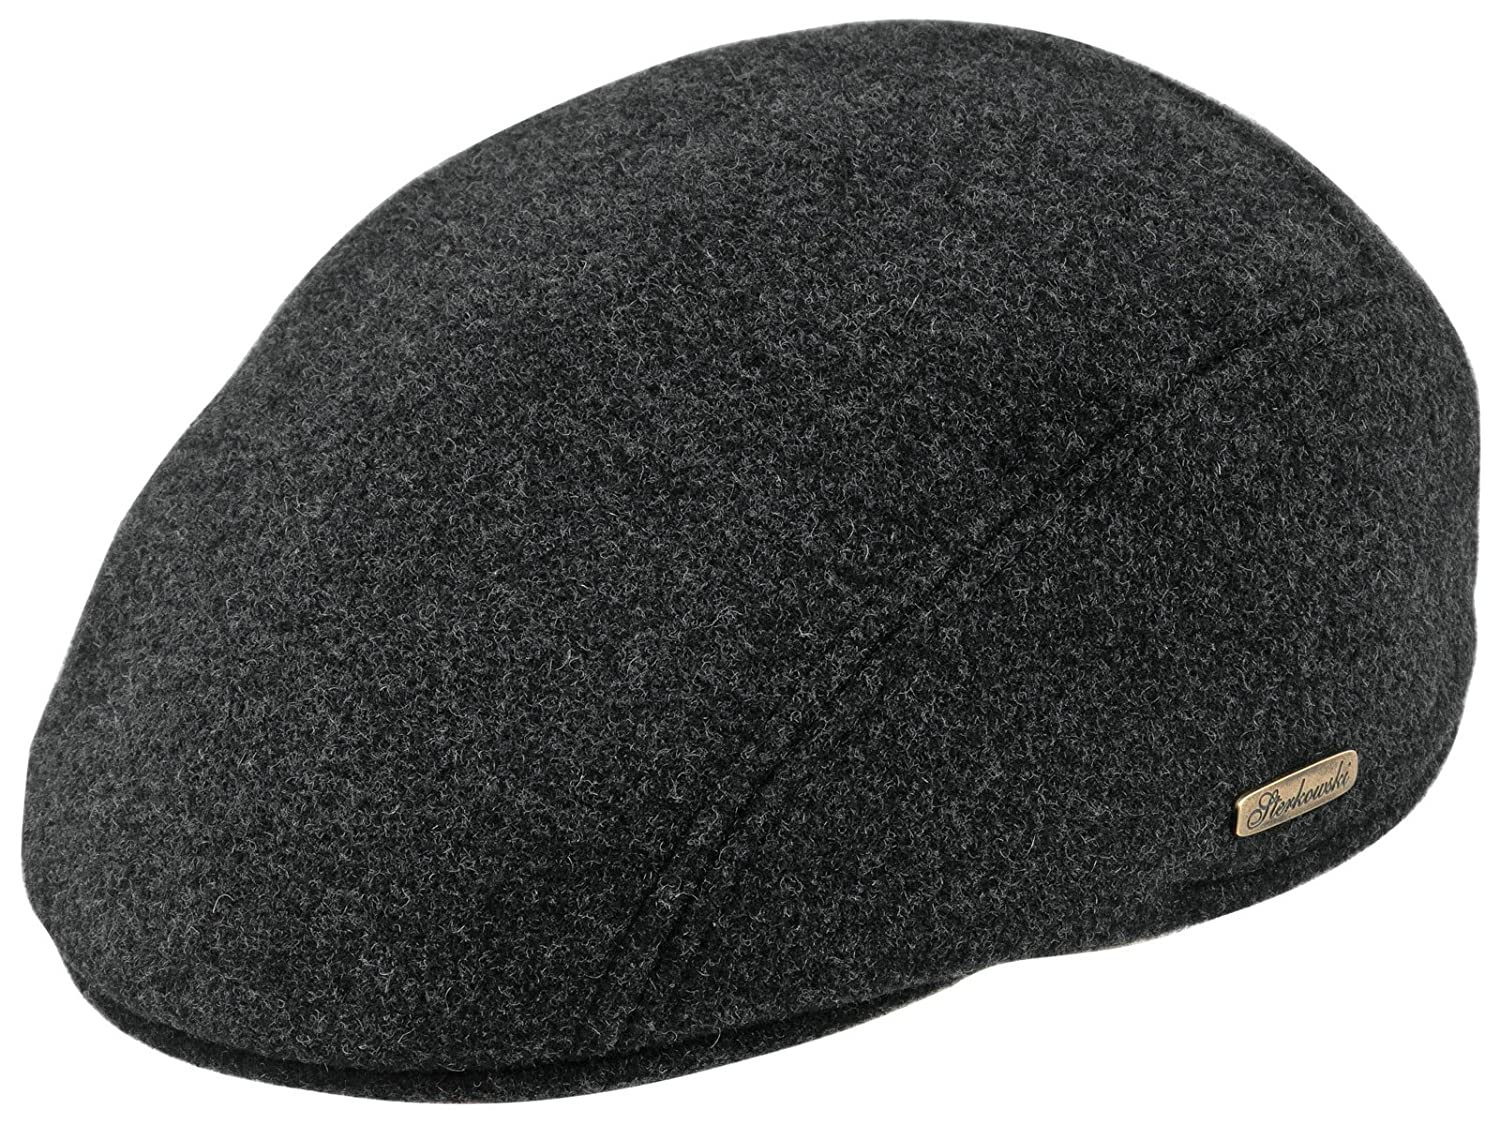 Warm Wool Blend Petersham Ivy League Flat Cap with Earflap US 7 1/8 Charcoal MRW-ANN-W05US 7 1/8